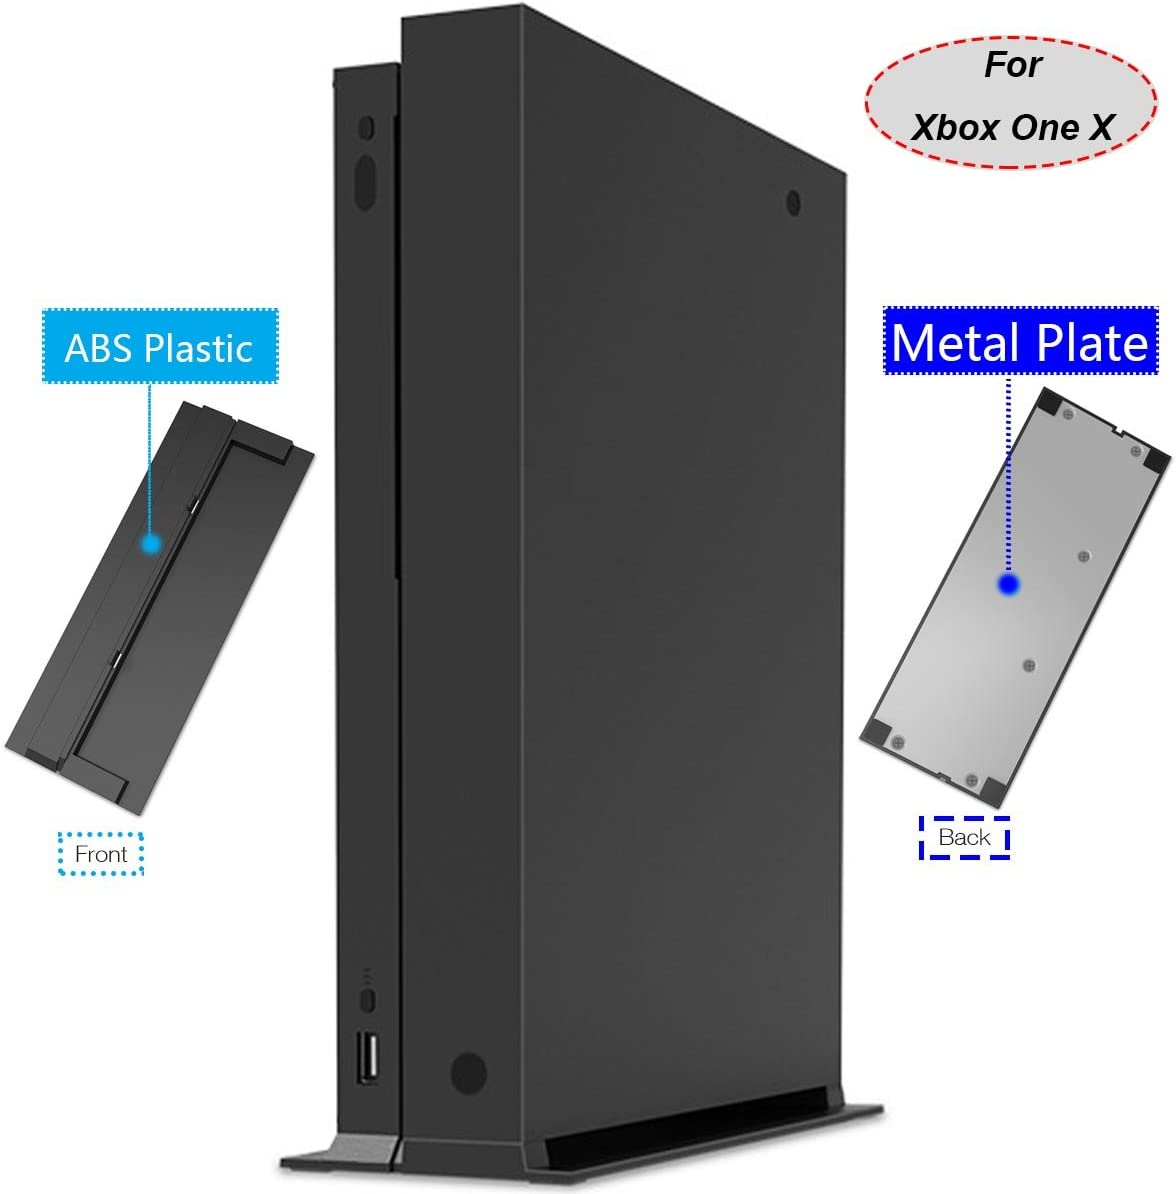 Whiteoak Vertical Stand for Xbox One X with ABS Platic Front + Metal Bottom Plate & 4X Non-Slip Rubber Pad(Metal Bottom Plate)